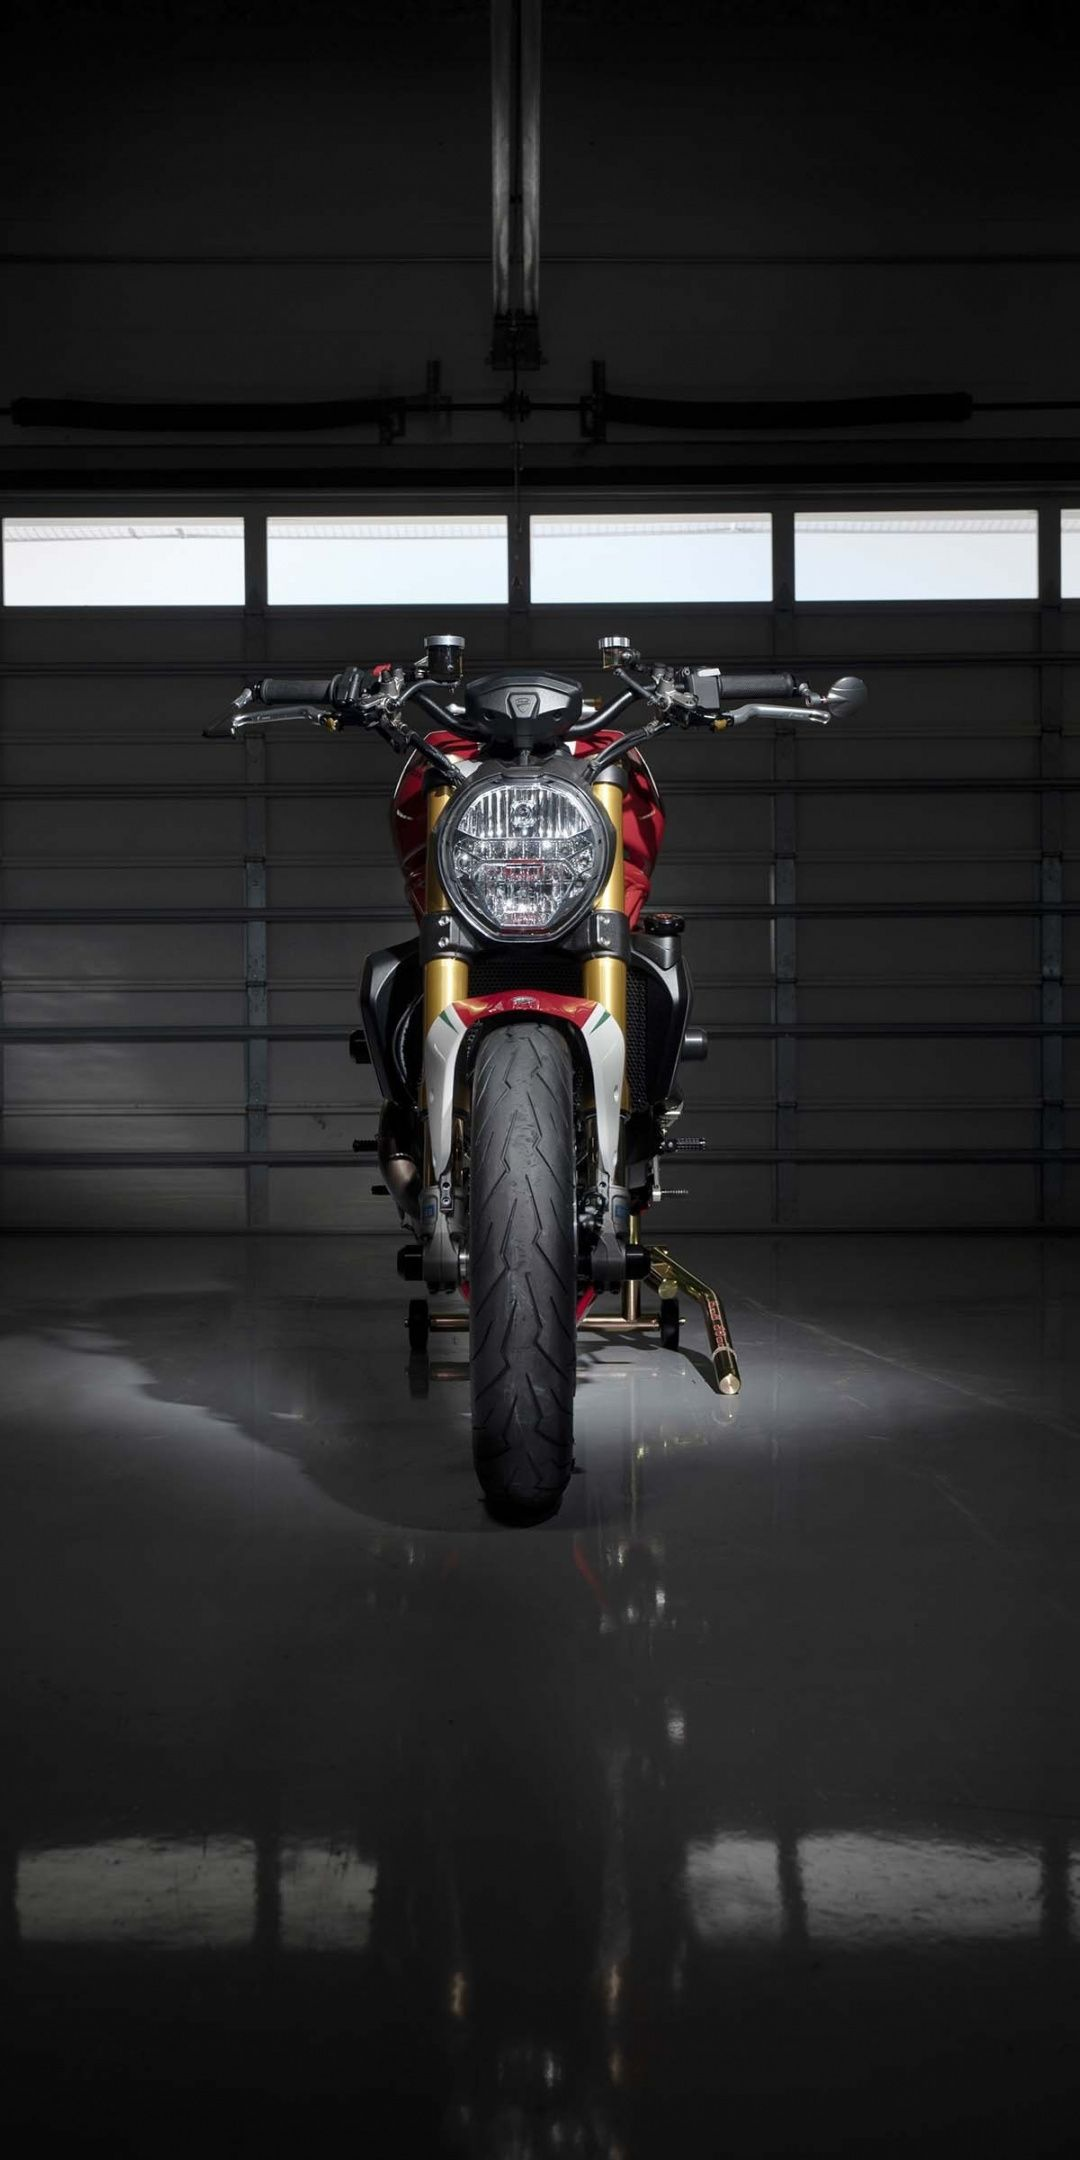 Ducati Monster 1200 Tricolore 2019 Basement 1080x2160 Wallpaper Ducati Monster Ducati Monster 1200 Ducati